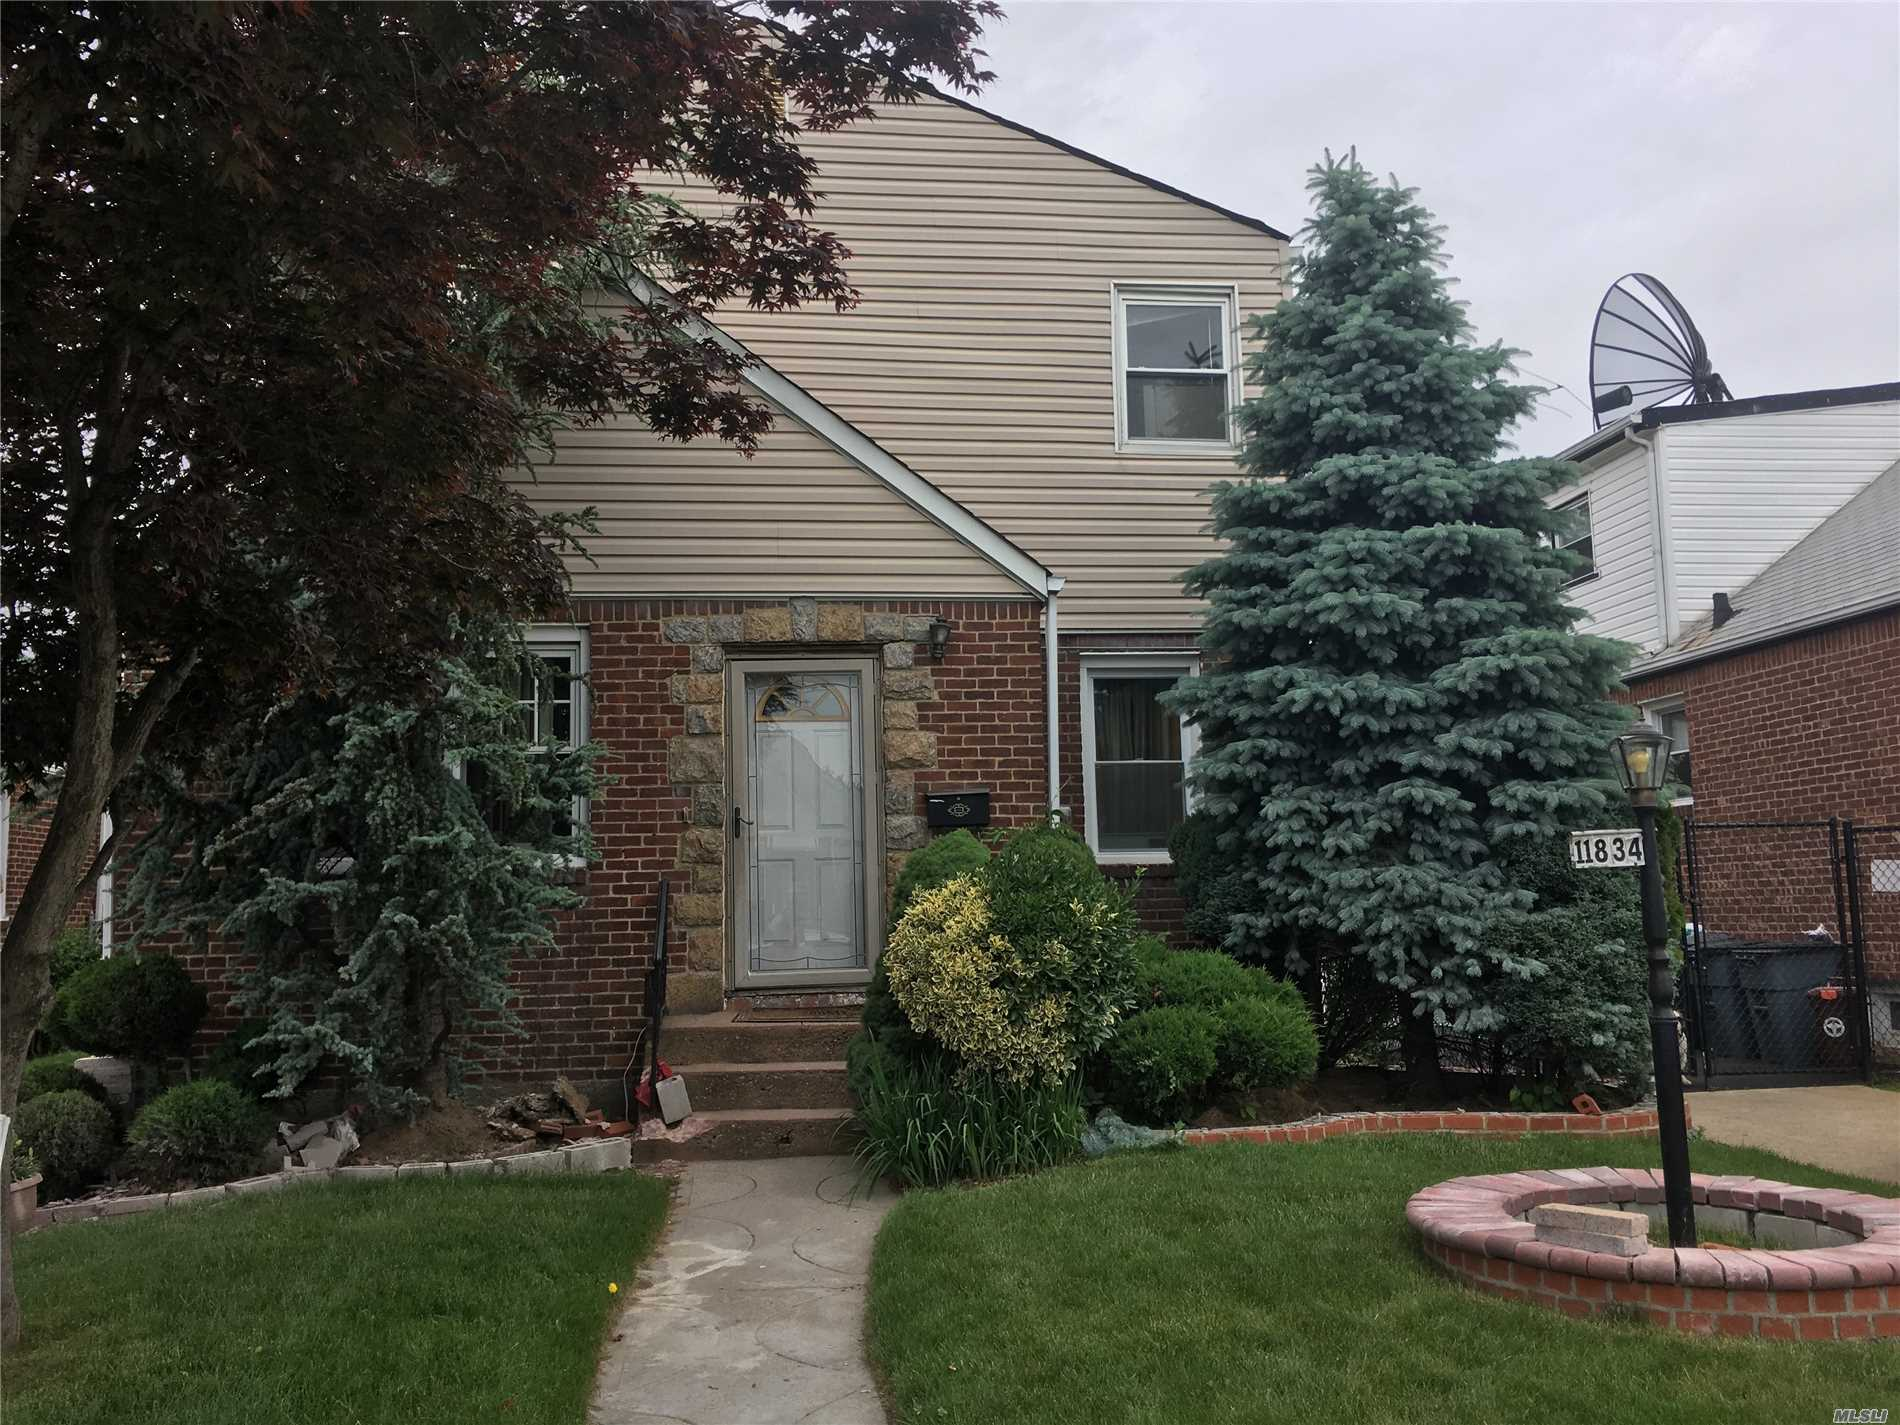 One Of A Kind Home In Cambria Heights- Desirable Neighborhood - Mother/Daughter Set Up - 2 Bedrooms Up And 2 Bedrooms Down- You Could Live Mortgage Free - Finished Basement With 2 Rooms And Outside Entrance- Well Maintained Home - Professionally Landscaped